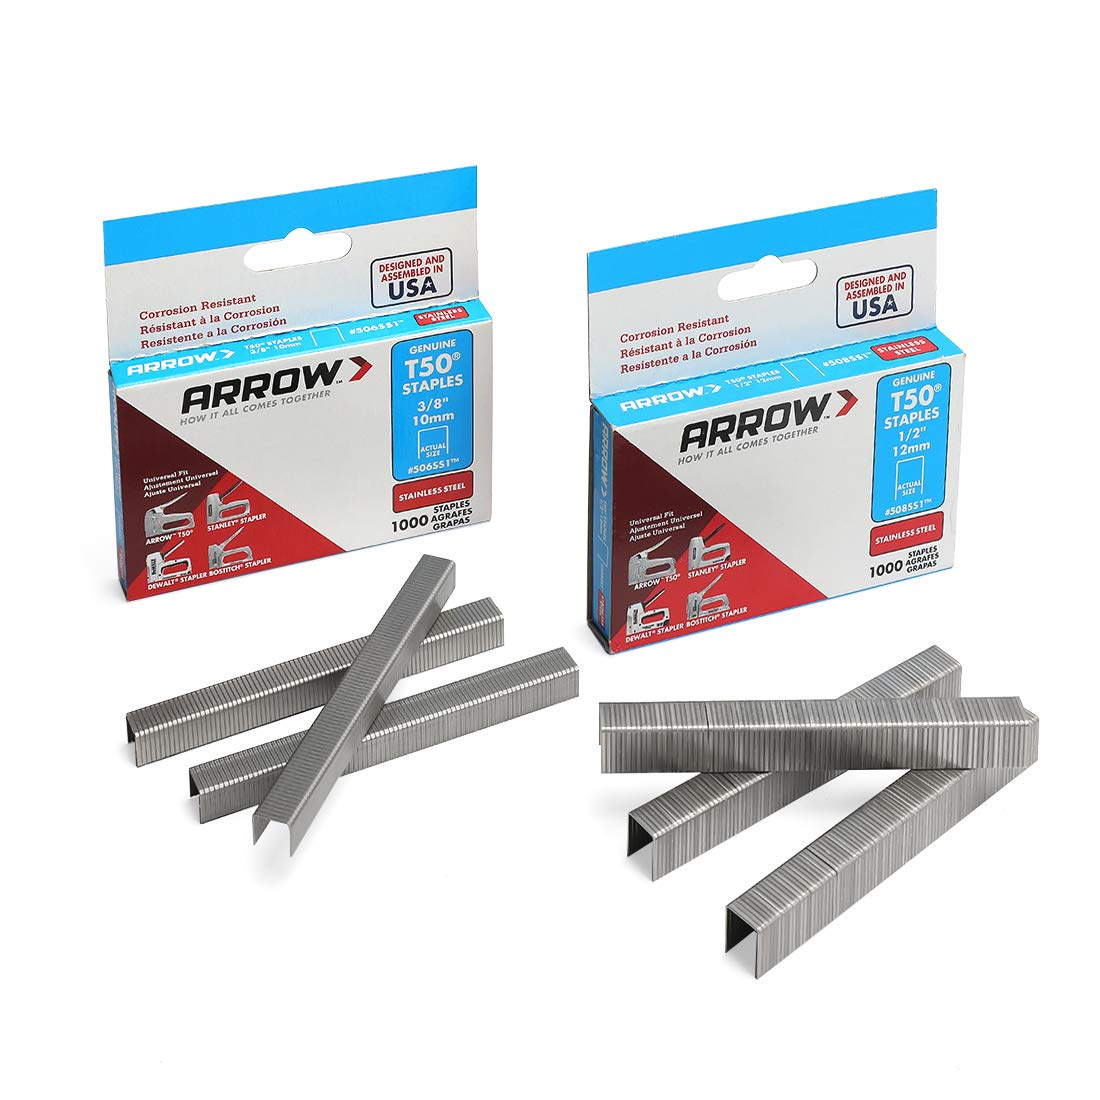 ARROW T50 Staples Pack Set #508SS1 1/2 12mm and #506SS1 3/8 10mm